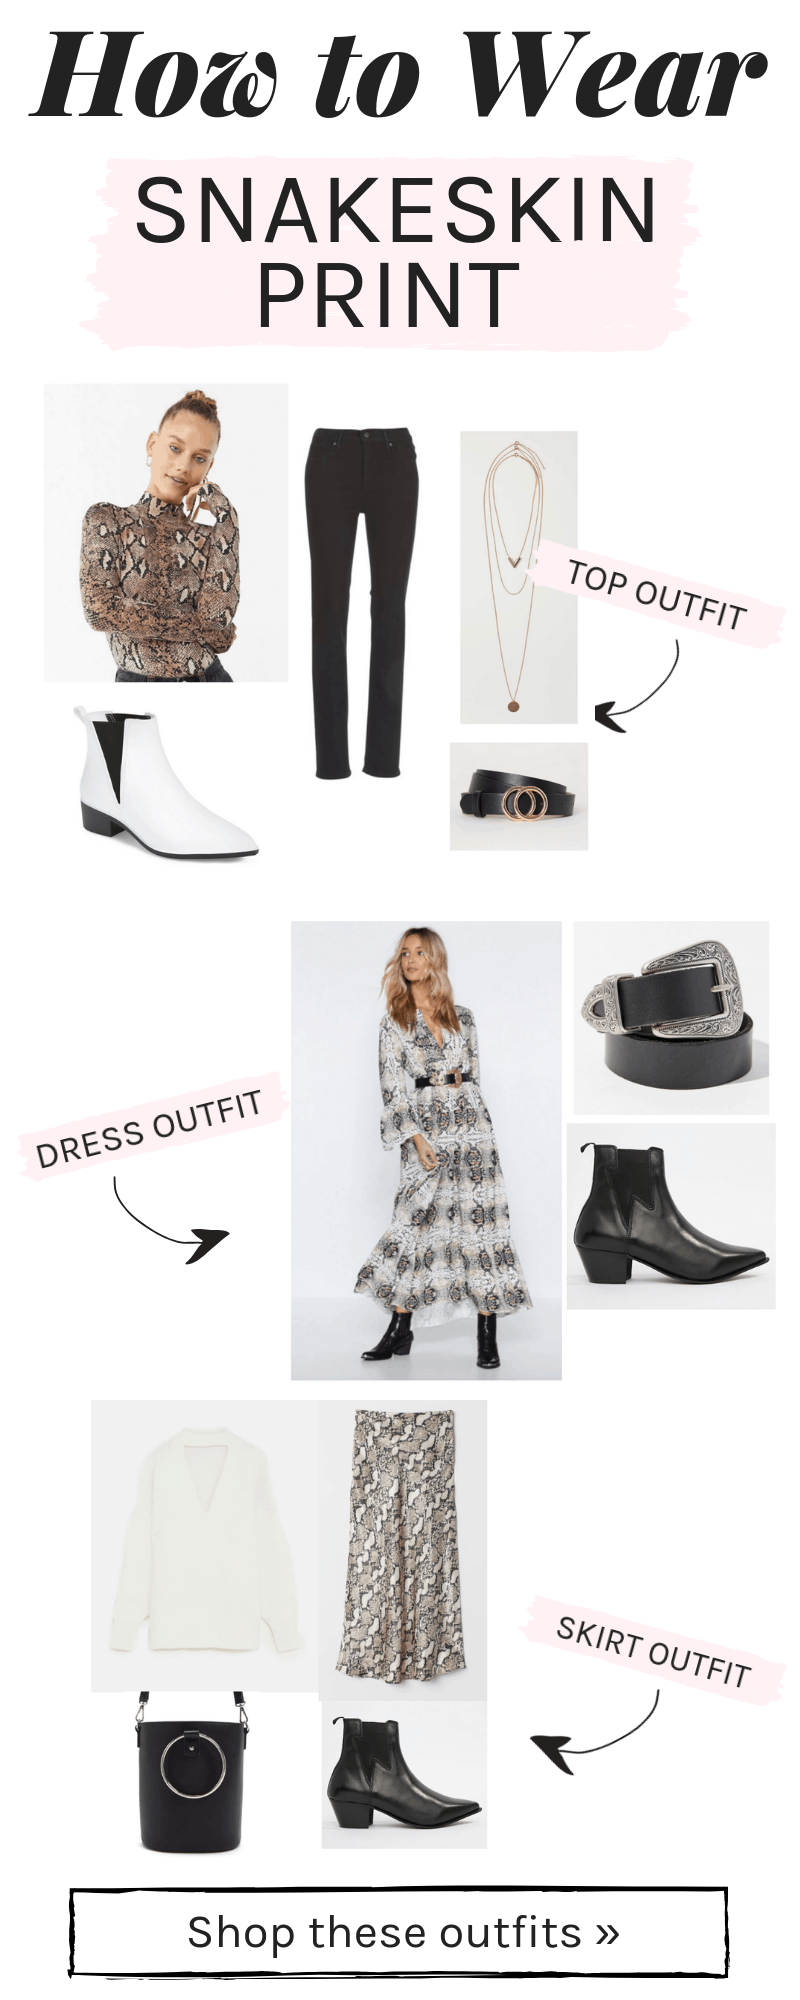 Snakeskin print outfits: How to wear snakeskin print in three different ways